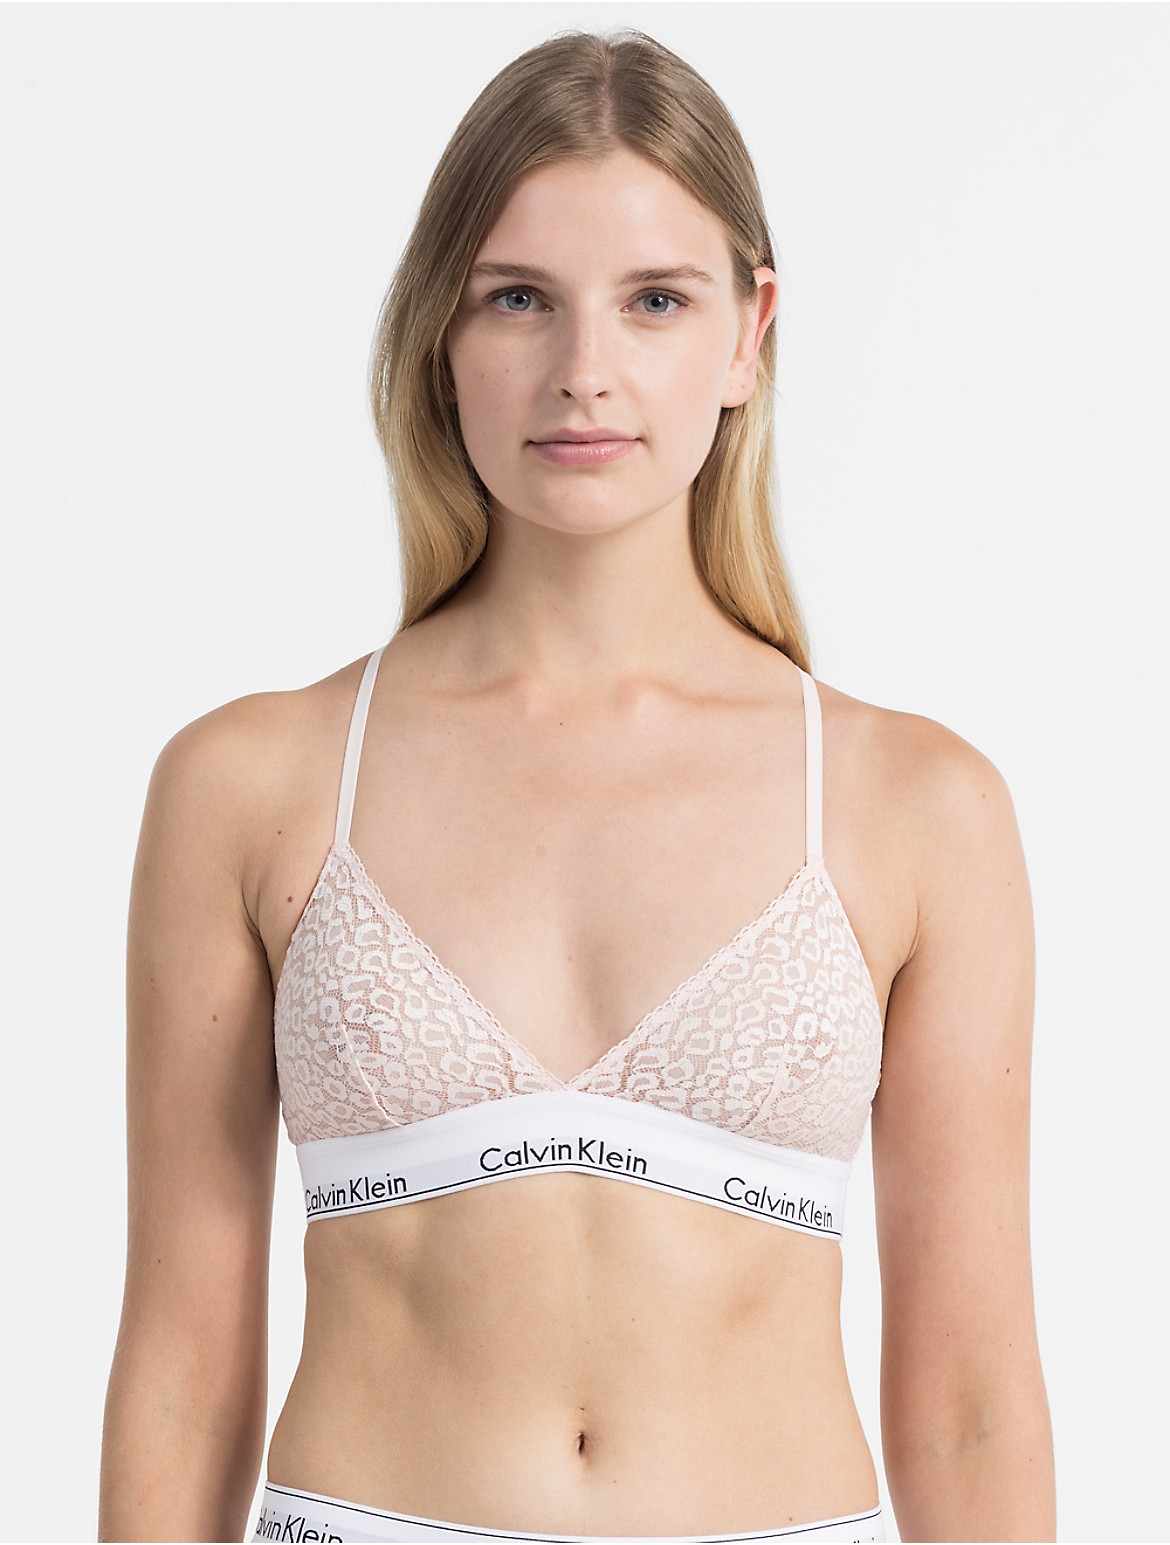 Womens Sweet Coton Triangle Bra Huit Best Place For Sale Manchester Great Sale Cheap Price Nicekicks Cheap Price Gfr1wWG